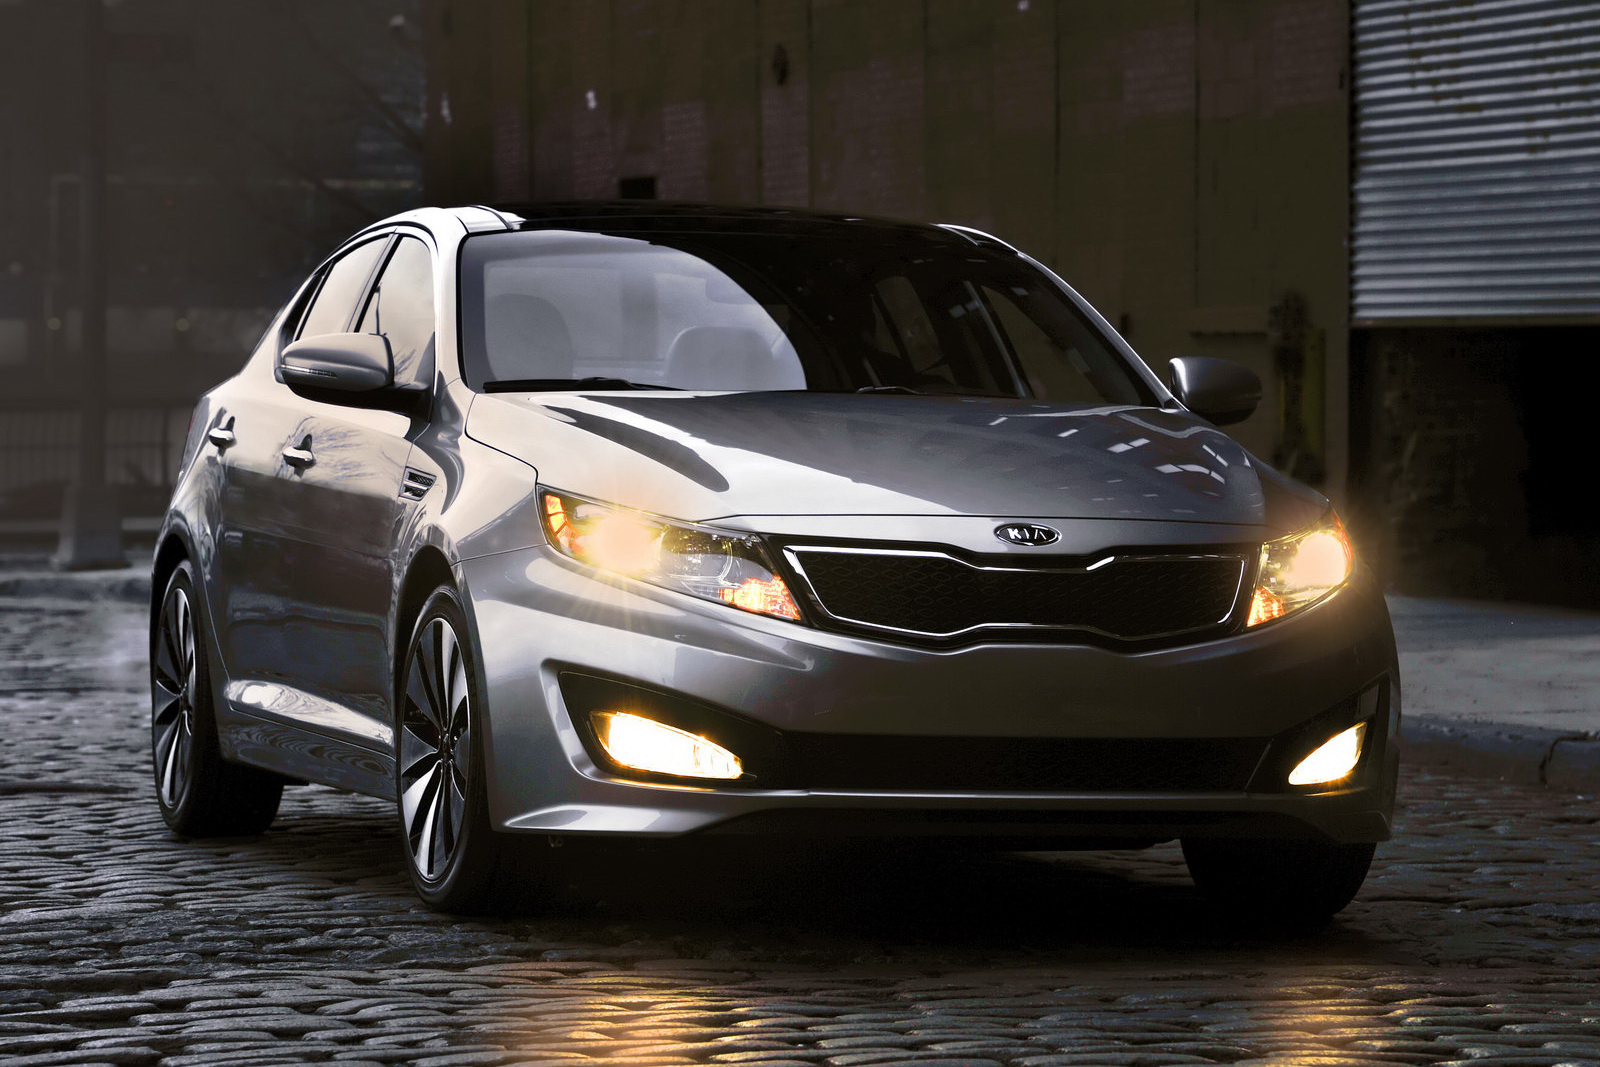 Kia Optima: Starting the Engine